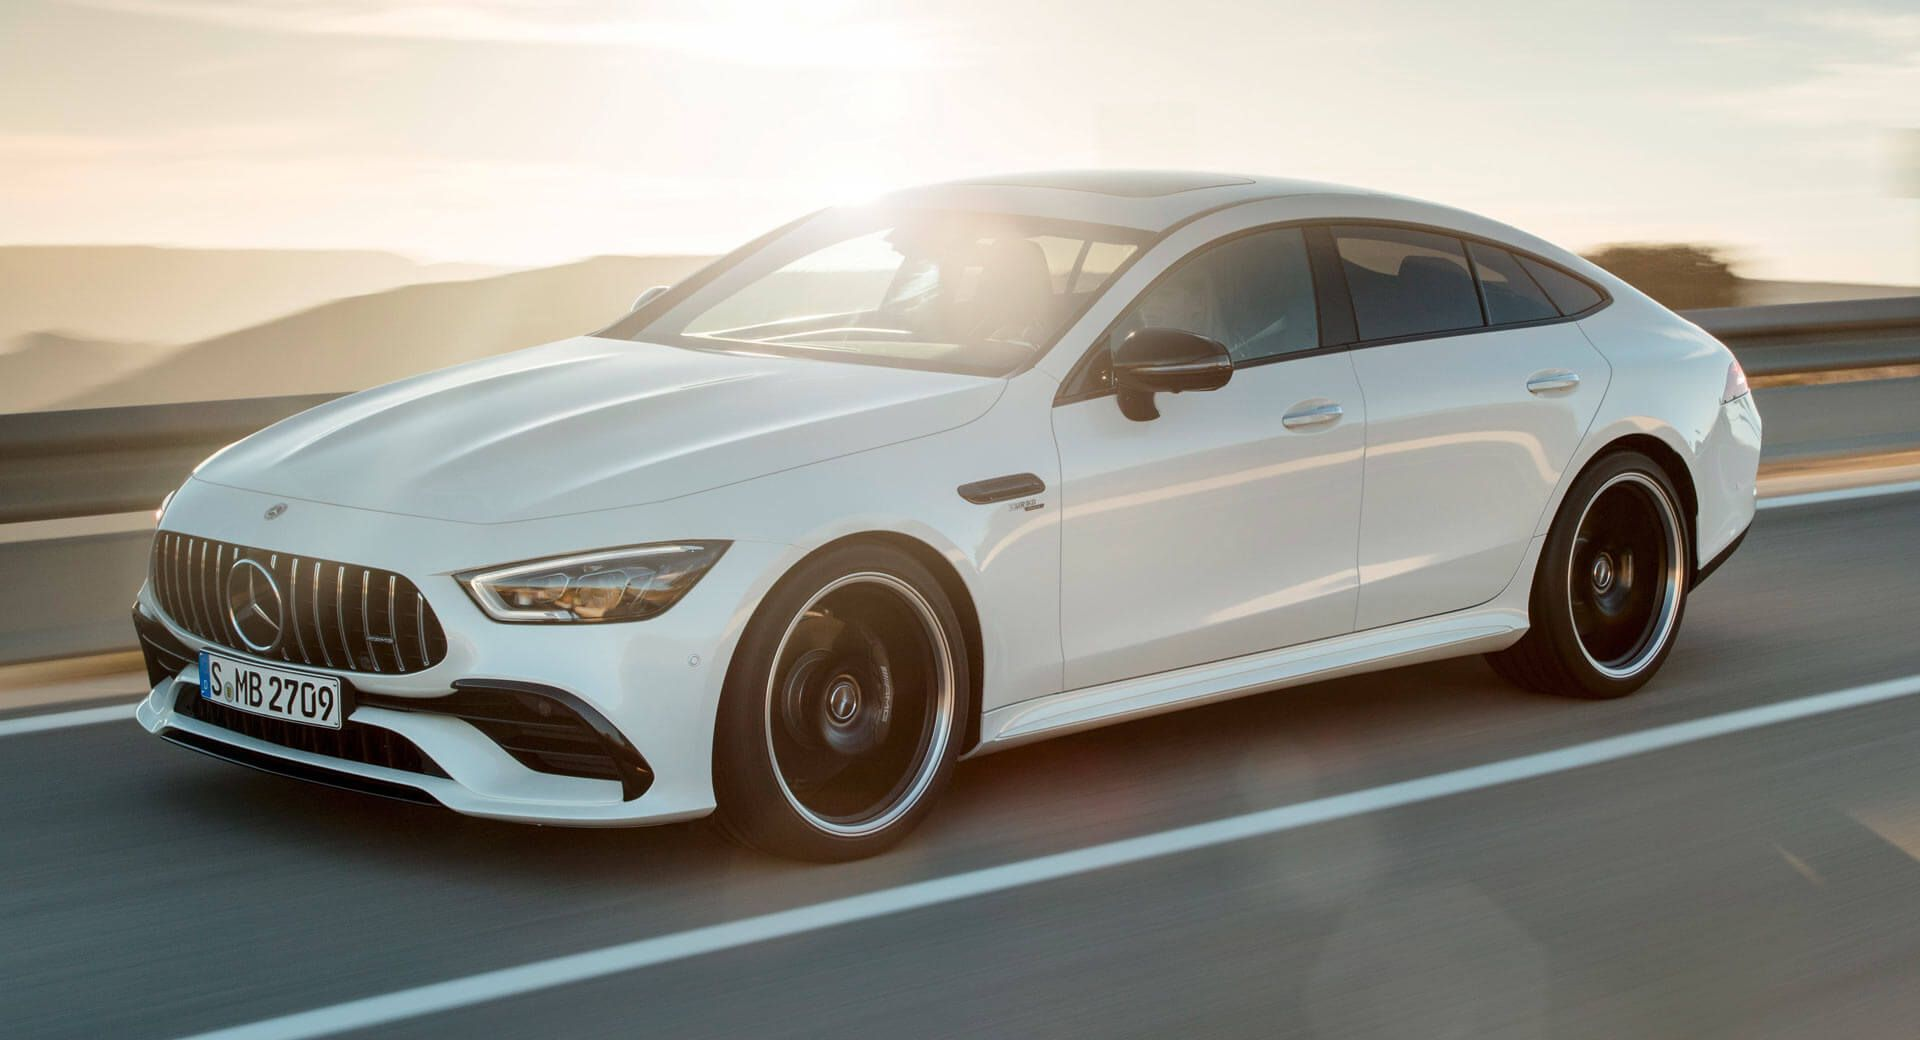 Mercedes Amg Gt 4 Door Coupe Hybrid Might Arrive In 2020 Carscoops Mercedes Benz Amg Mercedes Benz Mercedes Benz Cars